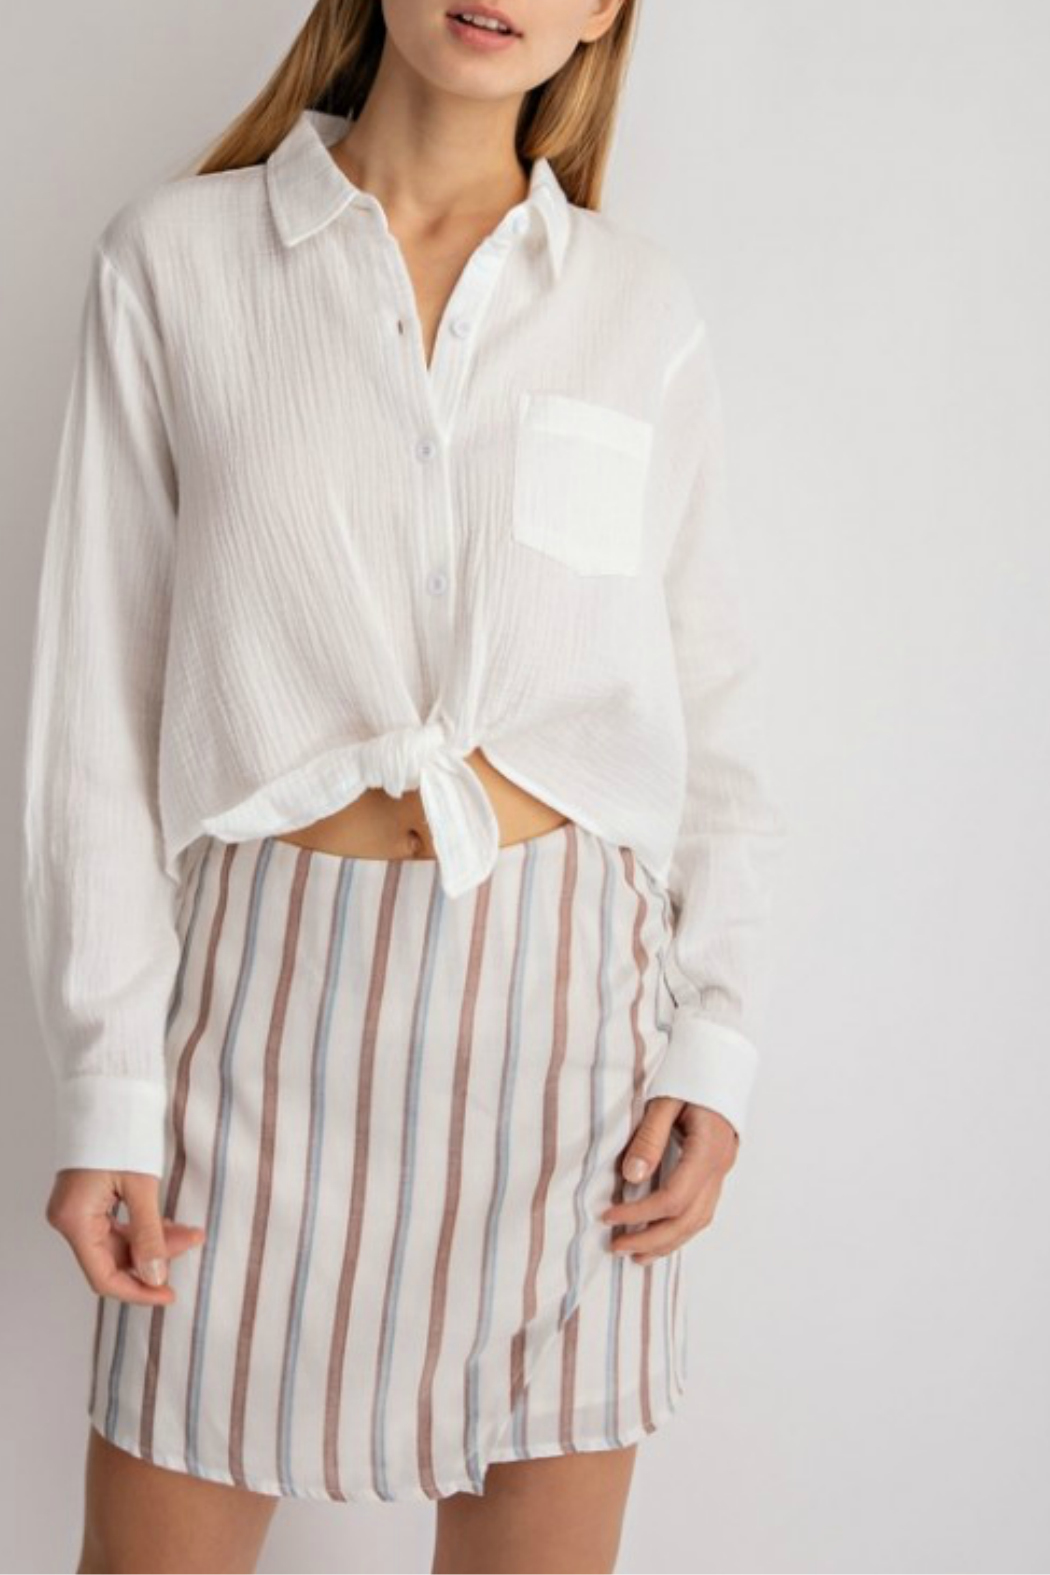 lelis Casual long sleeve top with front tie detail - Main Image